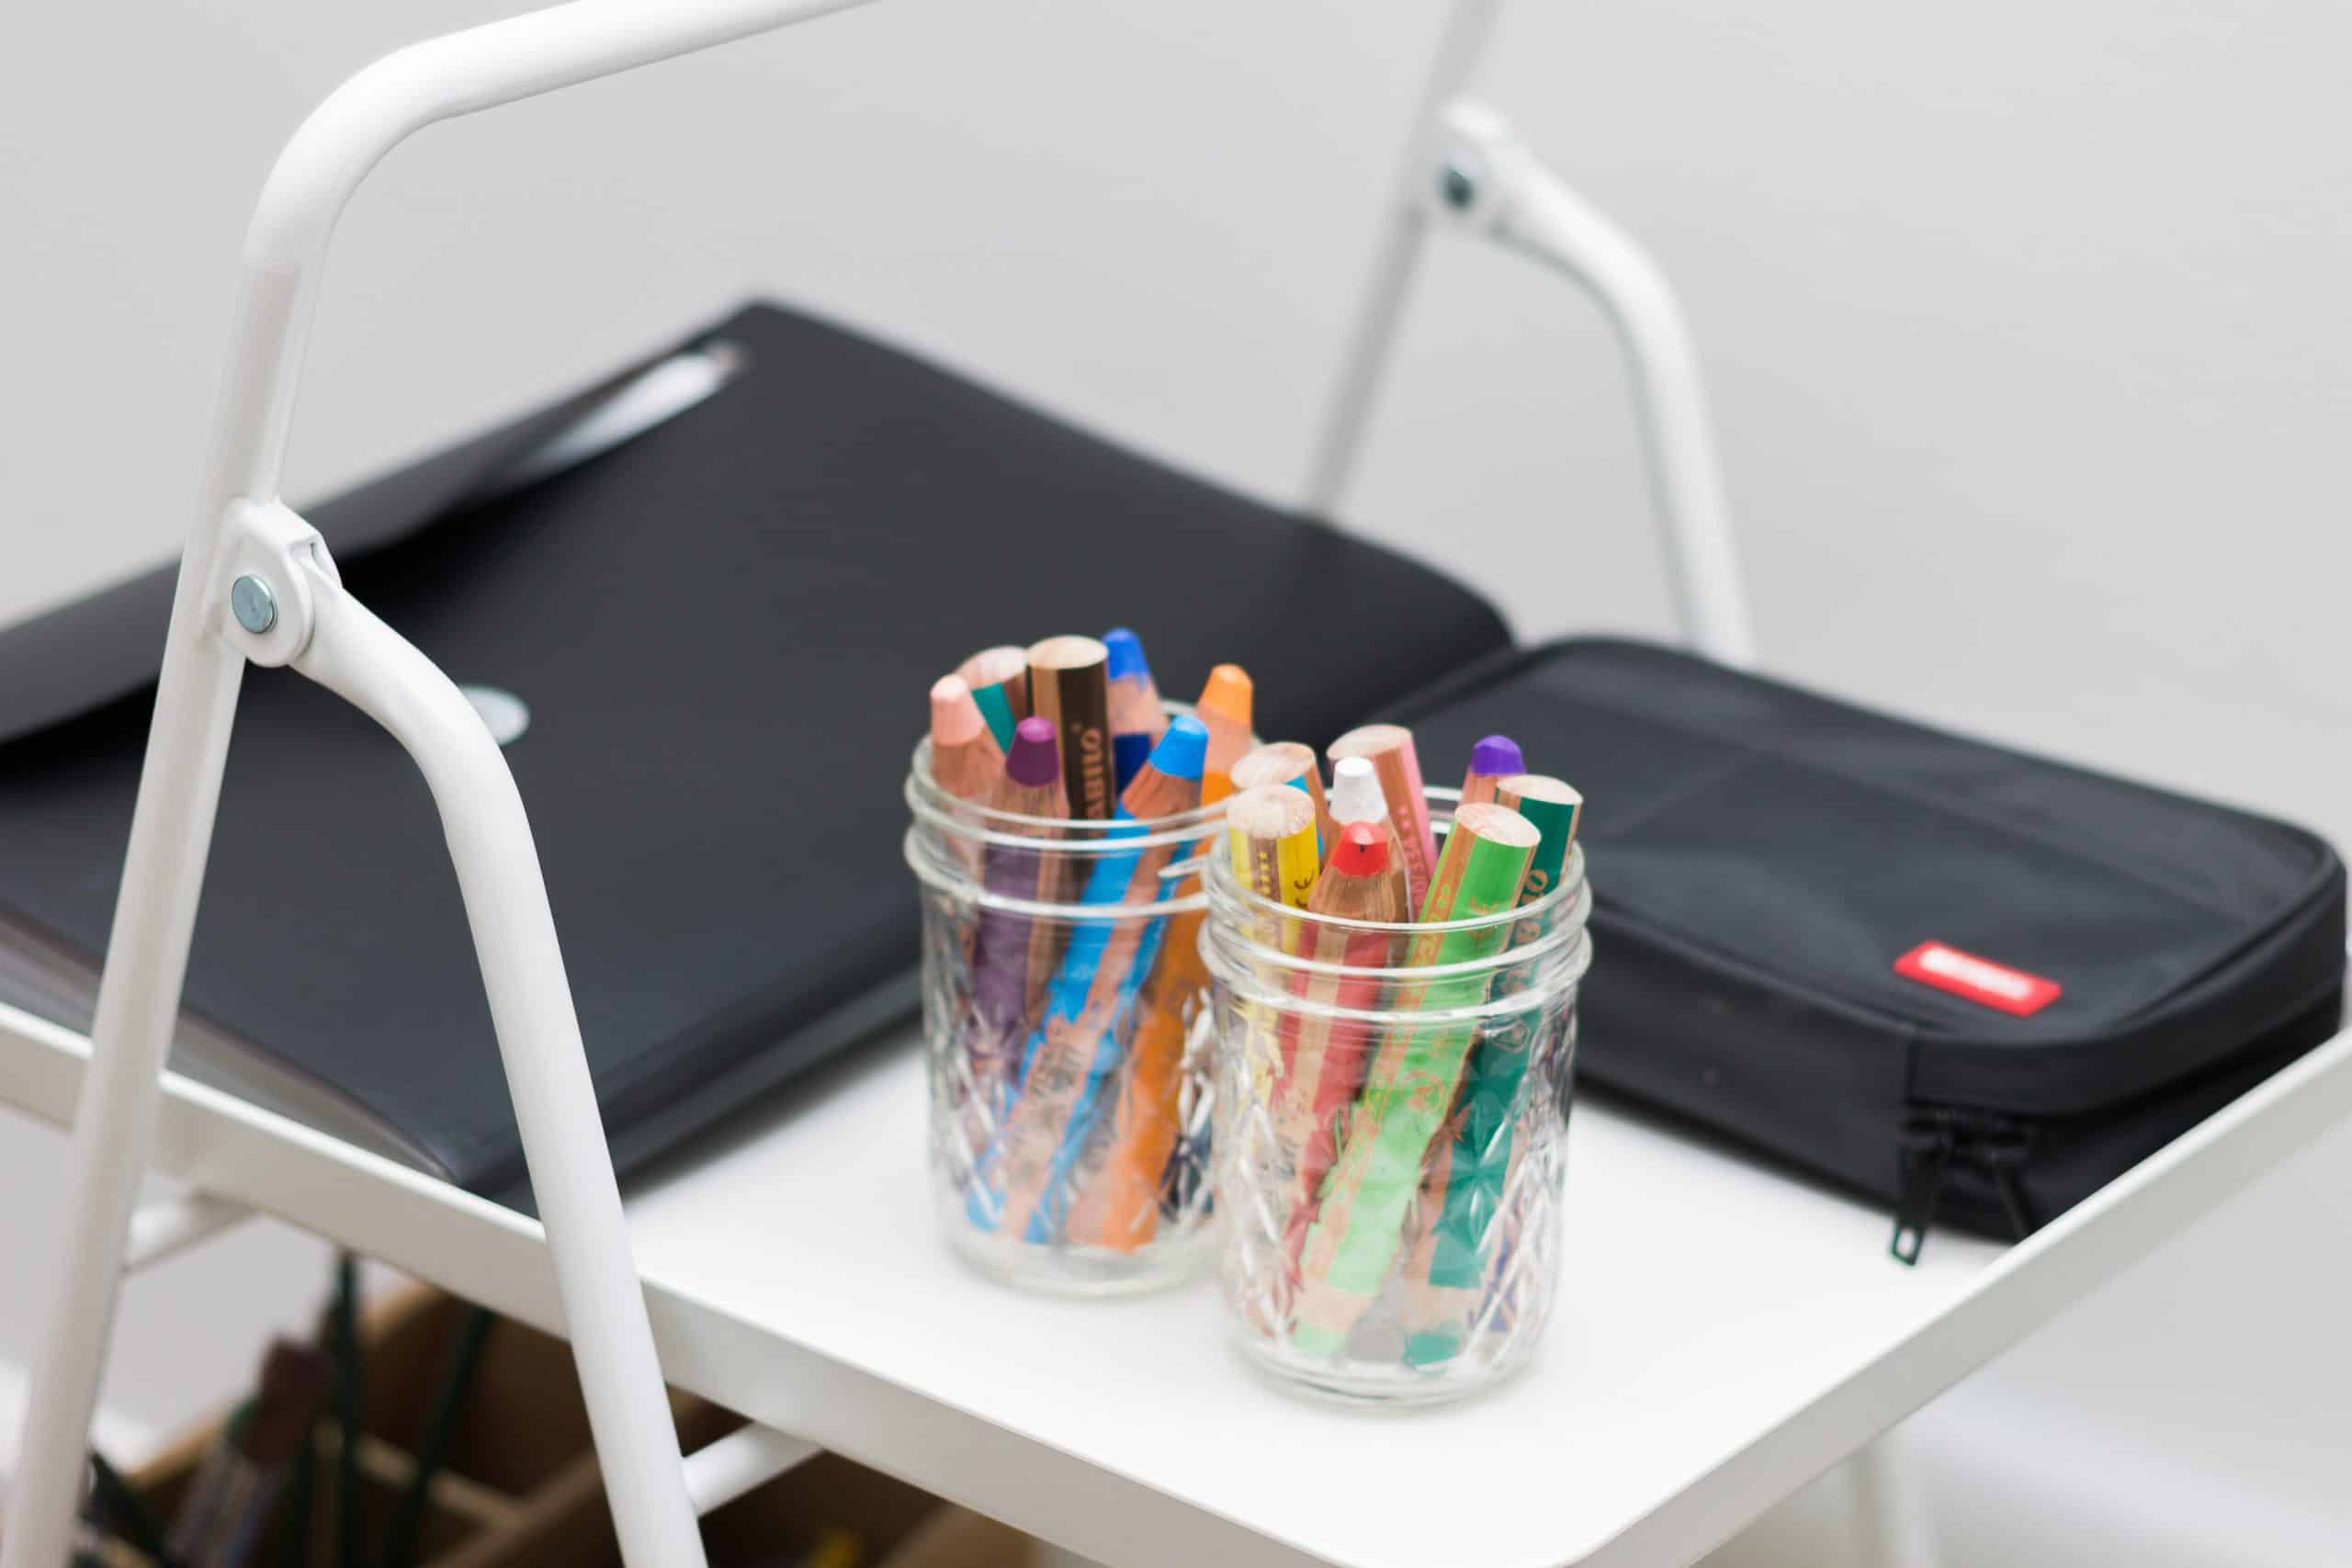 Art supplies and materials are being stored on IKEA's VIGGJA Tray Cart to make an accessible art station for young children in a Montessori-inspired home.